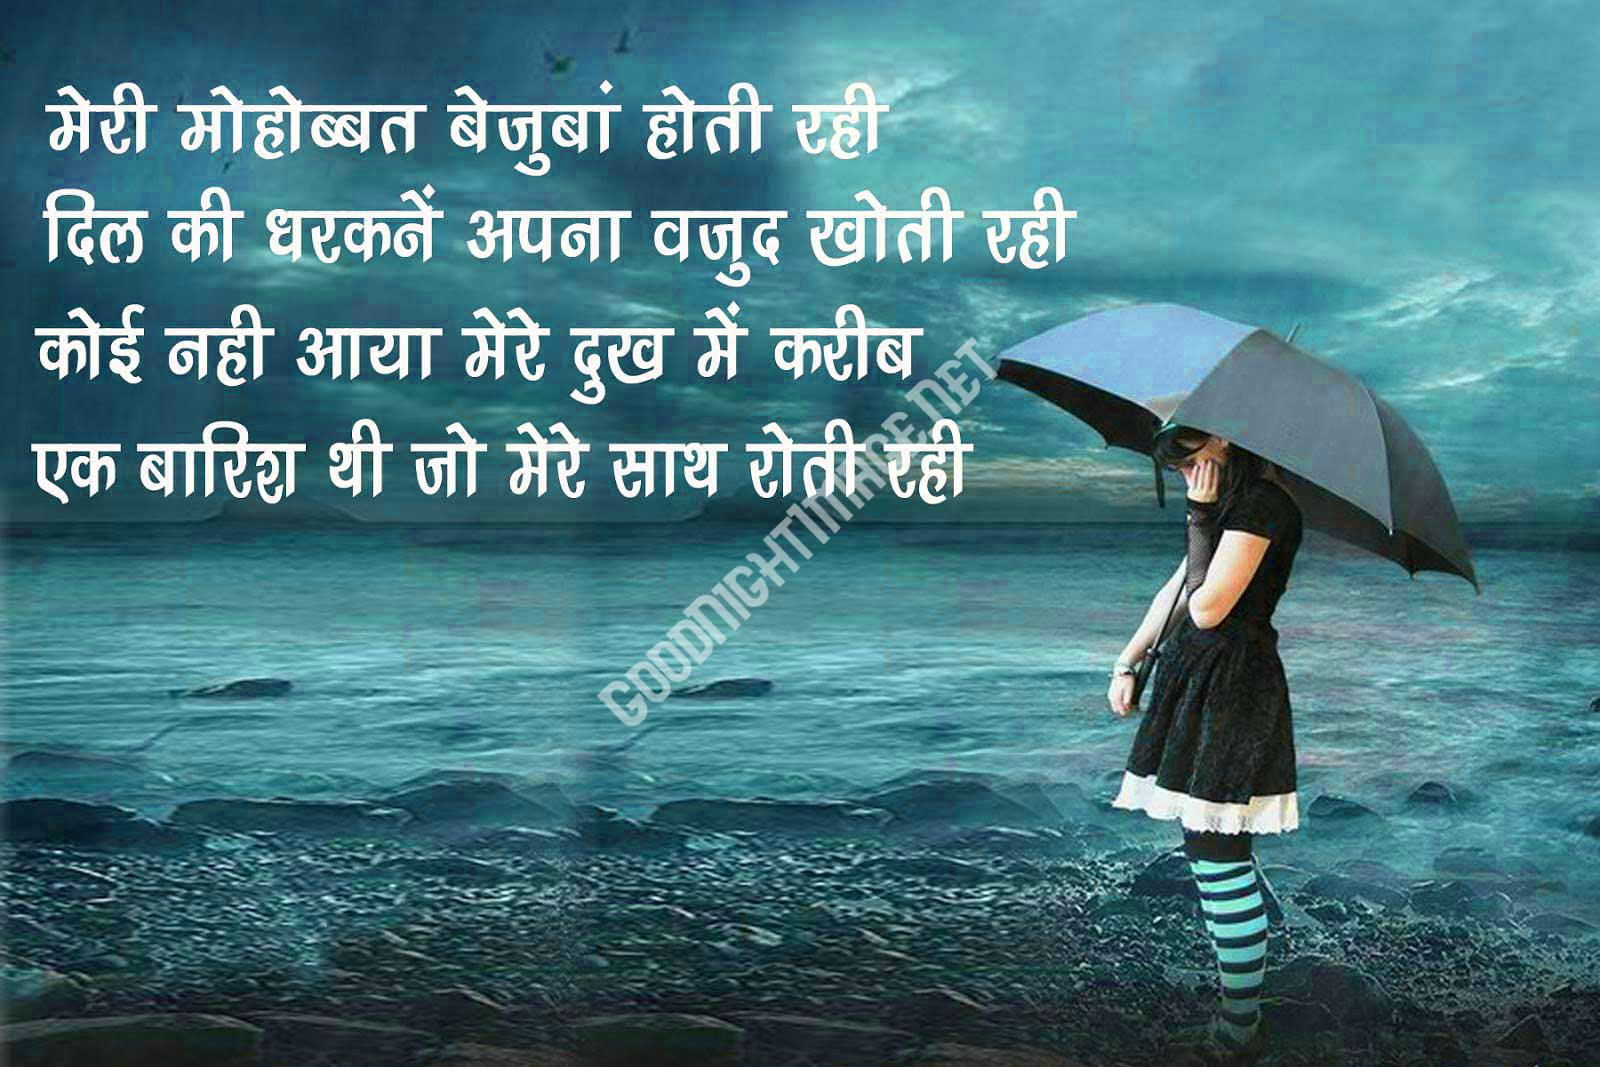 hindi love quotes for whatsapp dp2